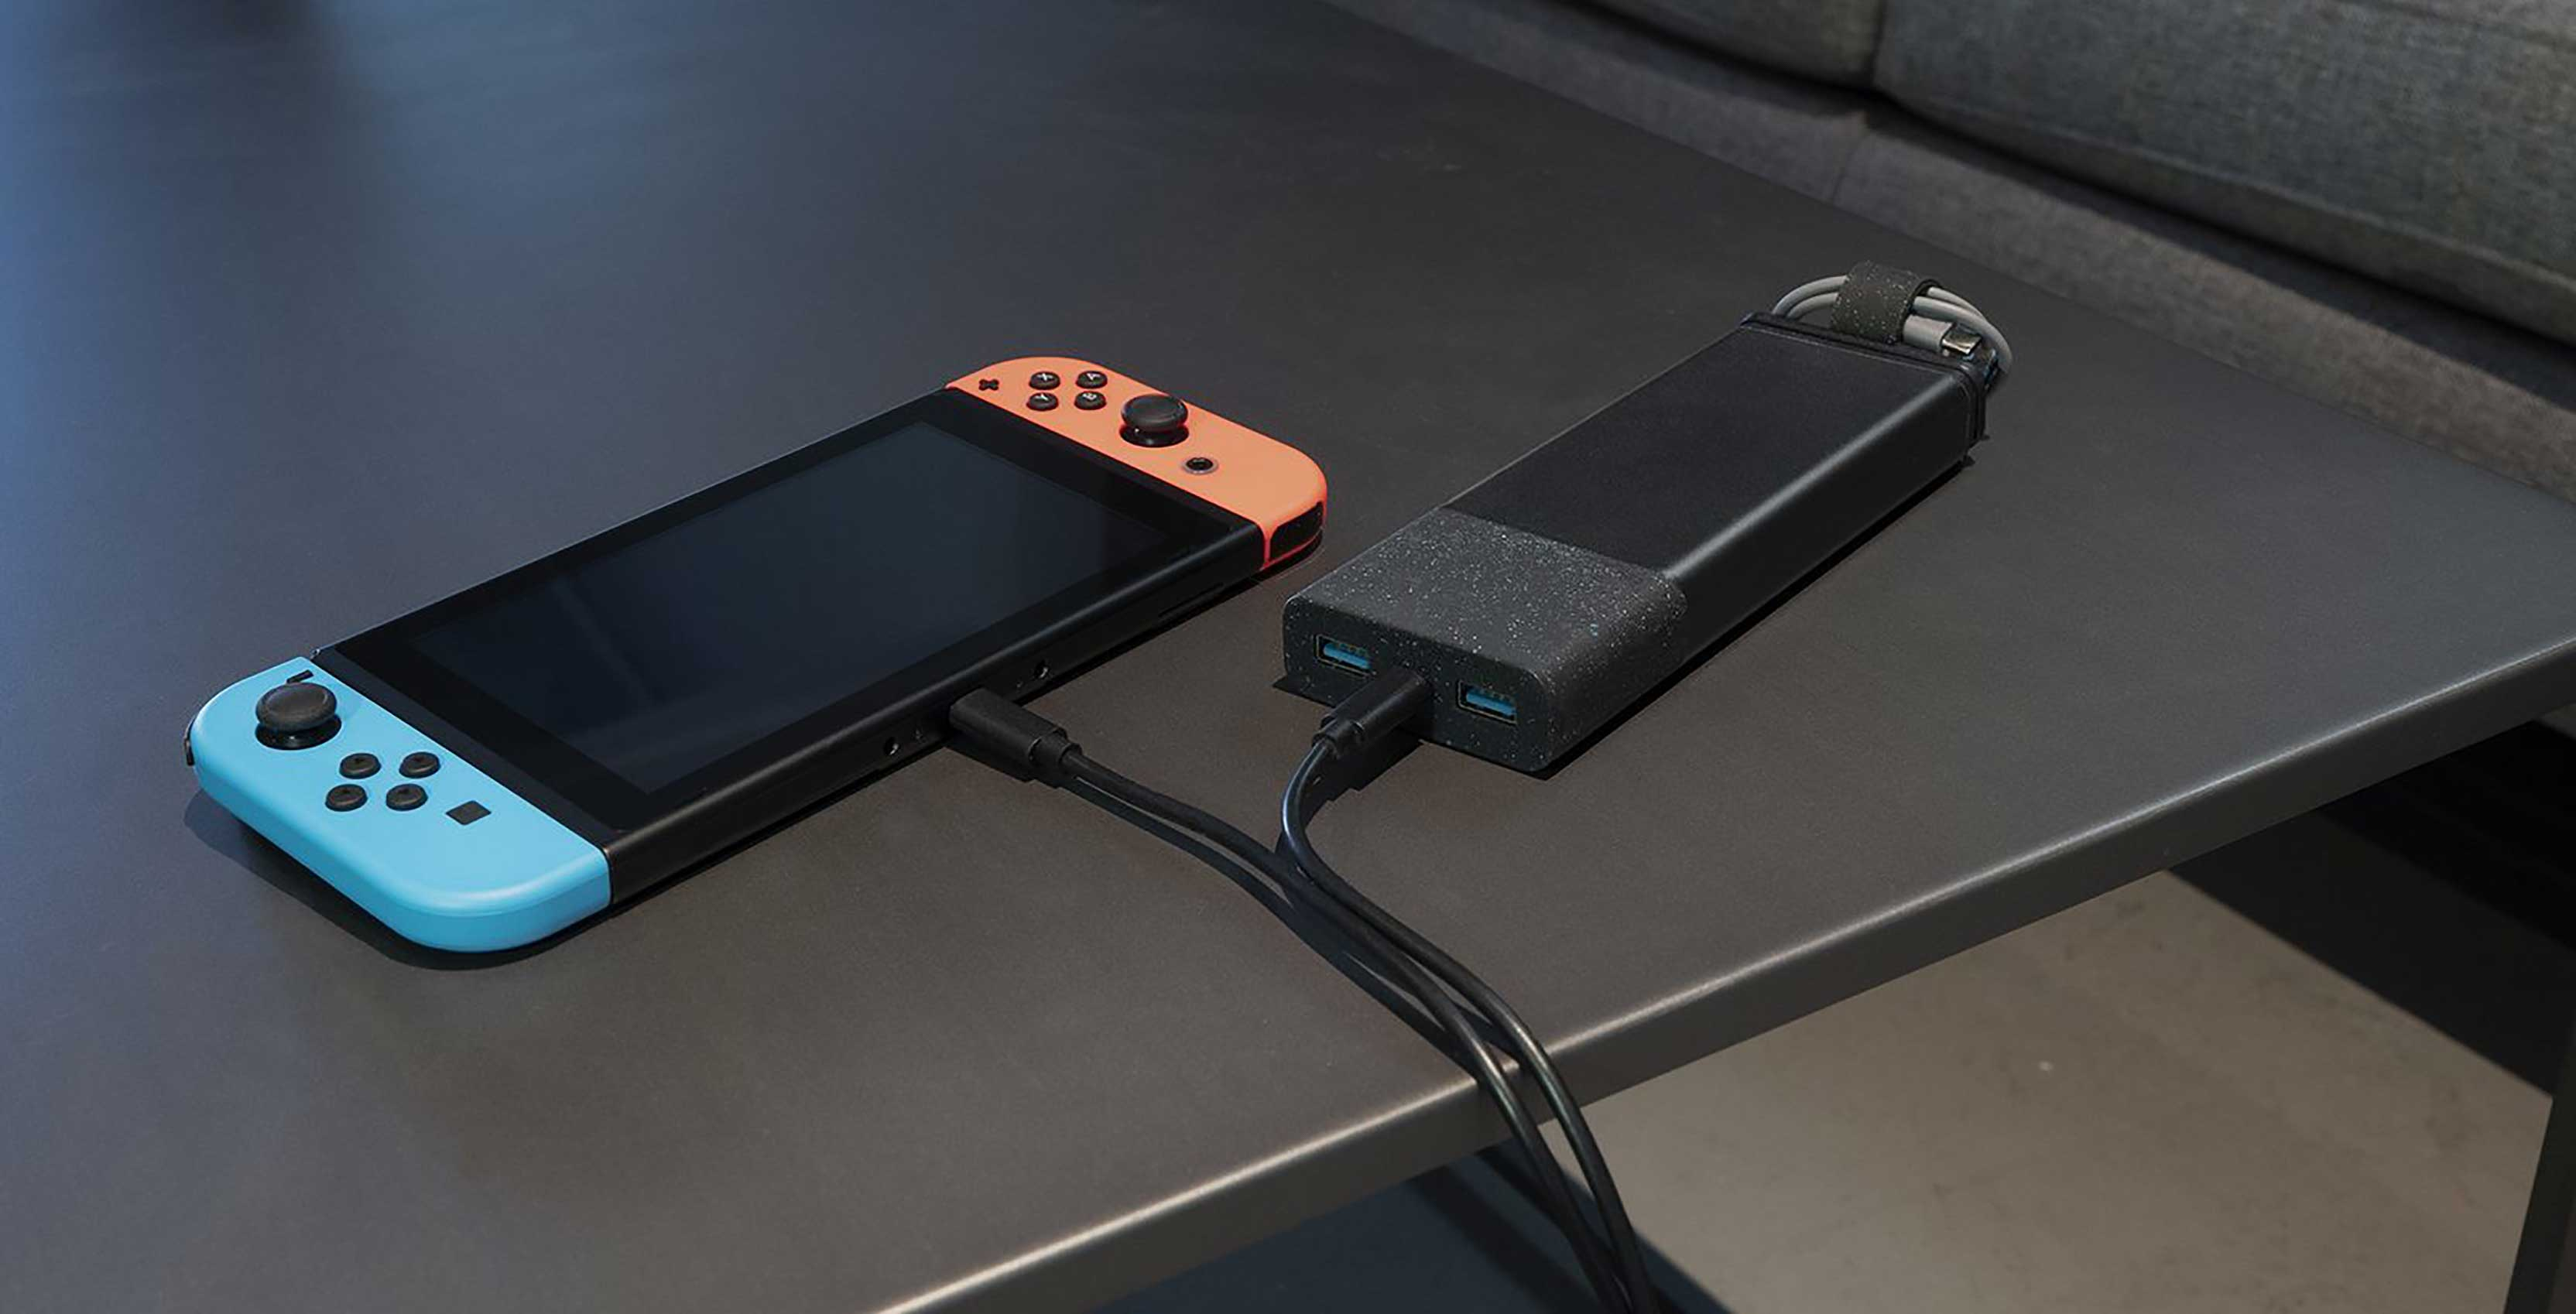 Nimble charging device connect to Nintendo Switch